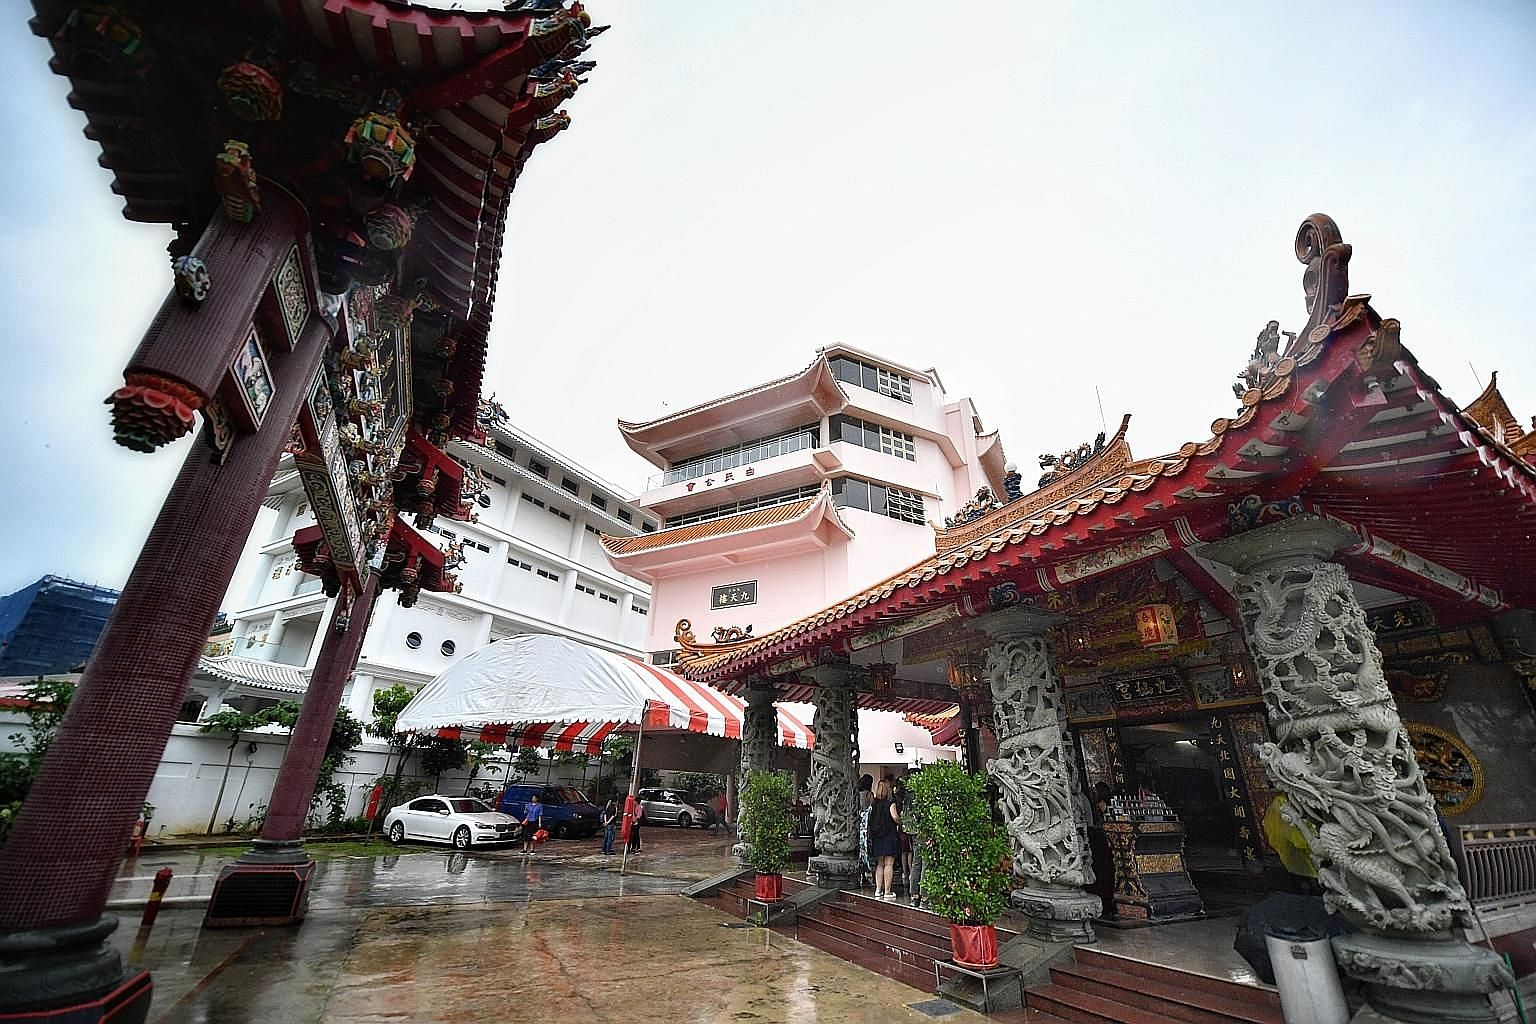 Kiew Sian King Temple is one of the landmarks along the trail, which is the 17th heritage trail by the National Heritage Board.